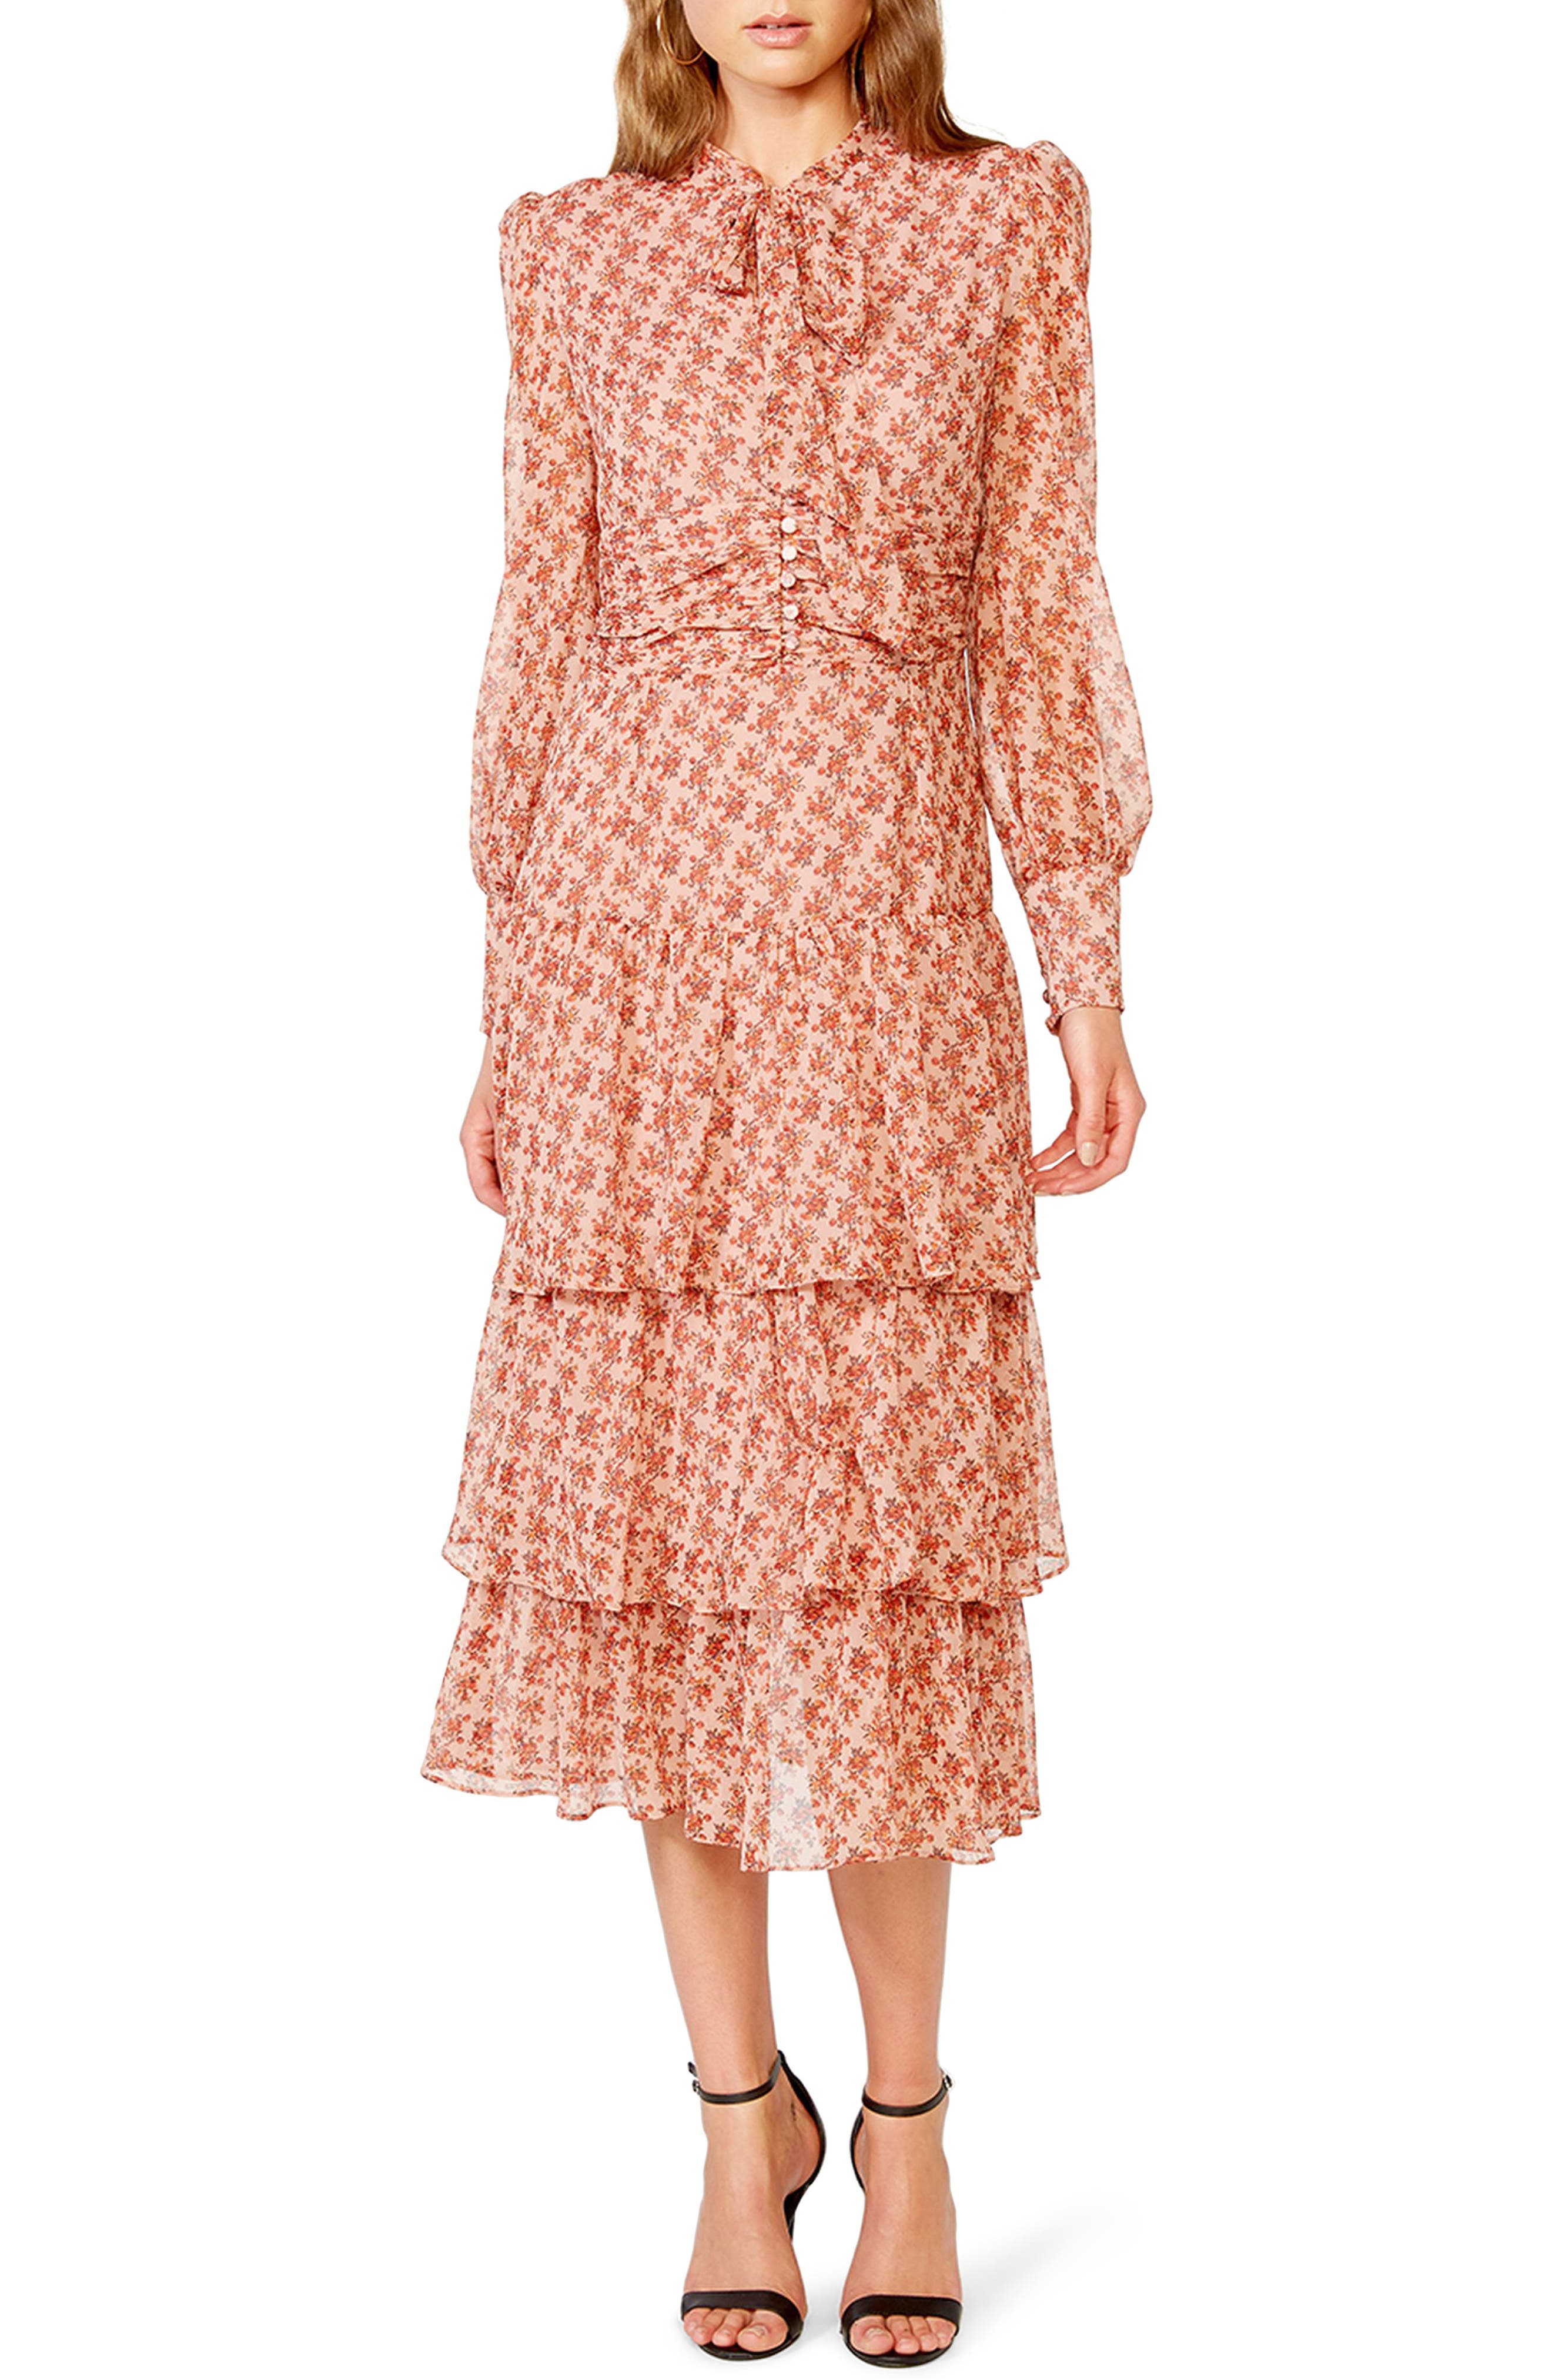 1930s Style Clothing and Fashion Womens Bardot Lainey Floral Long Sleeve Tiered Chiffon Maxi Dress $189.00 AT vintagedancer.com